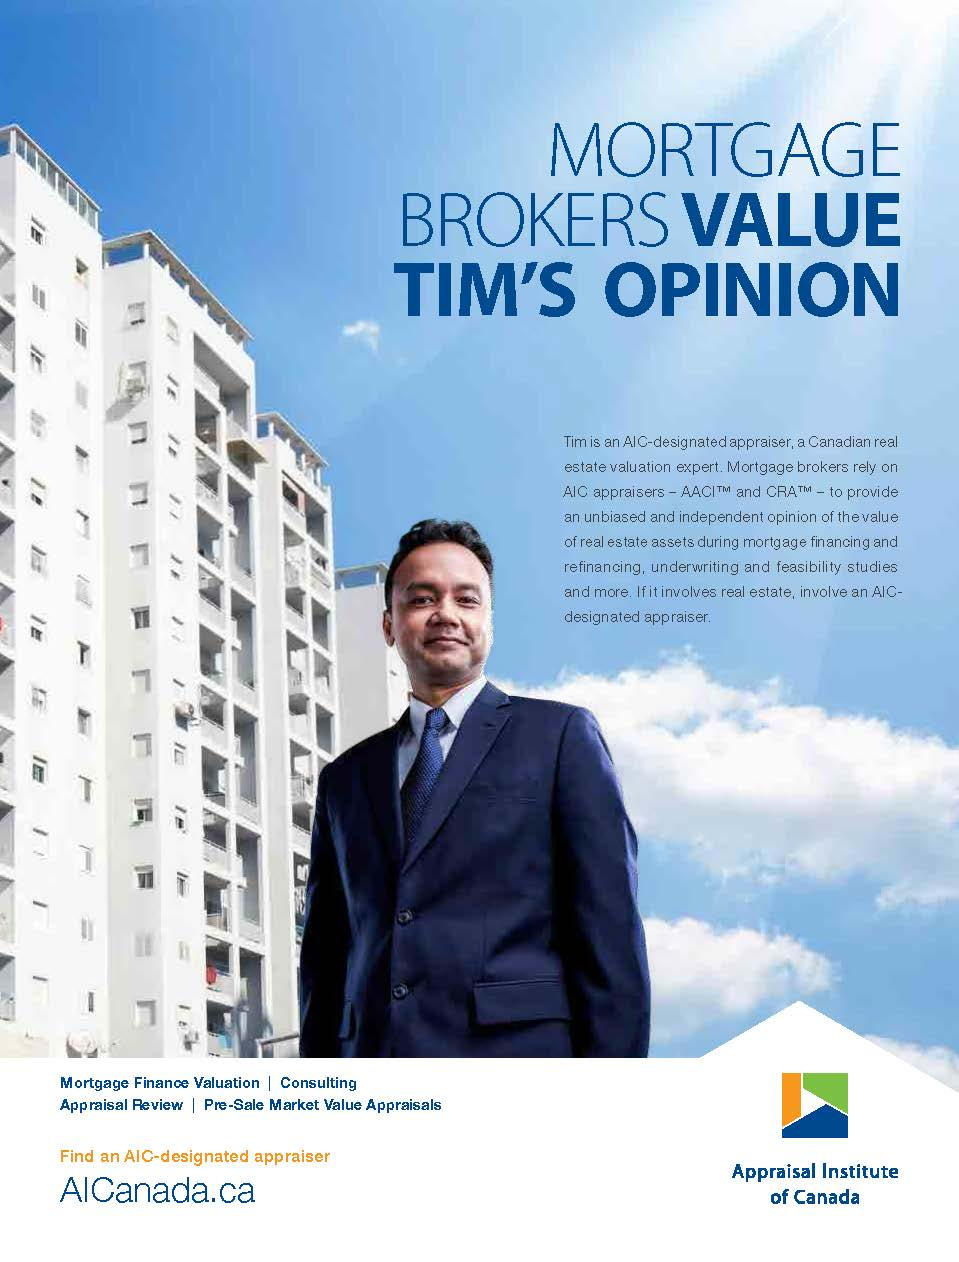 MORTGAGE BROKERS VALUE 2016